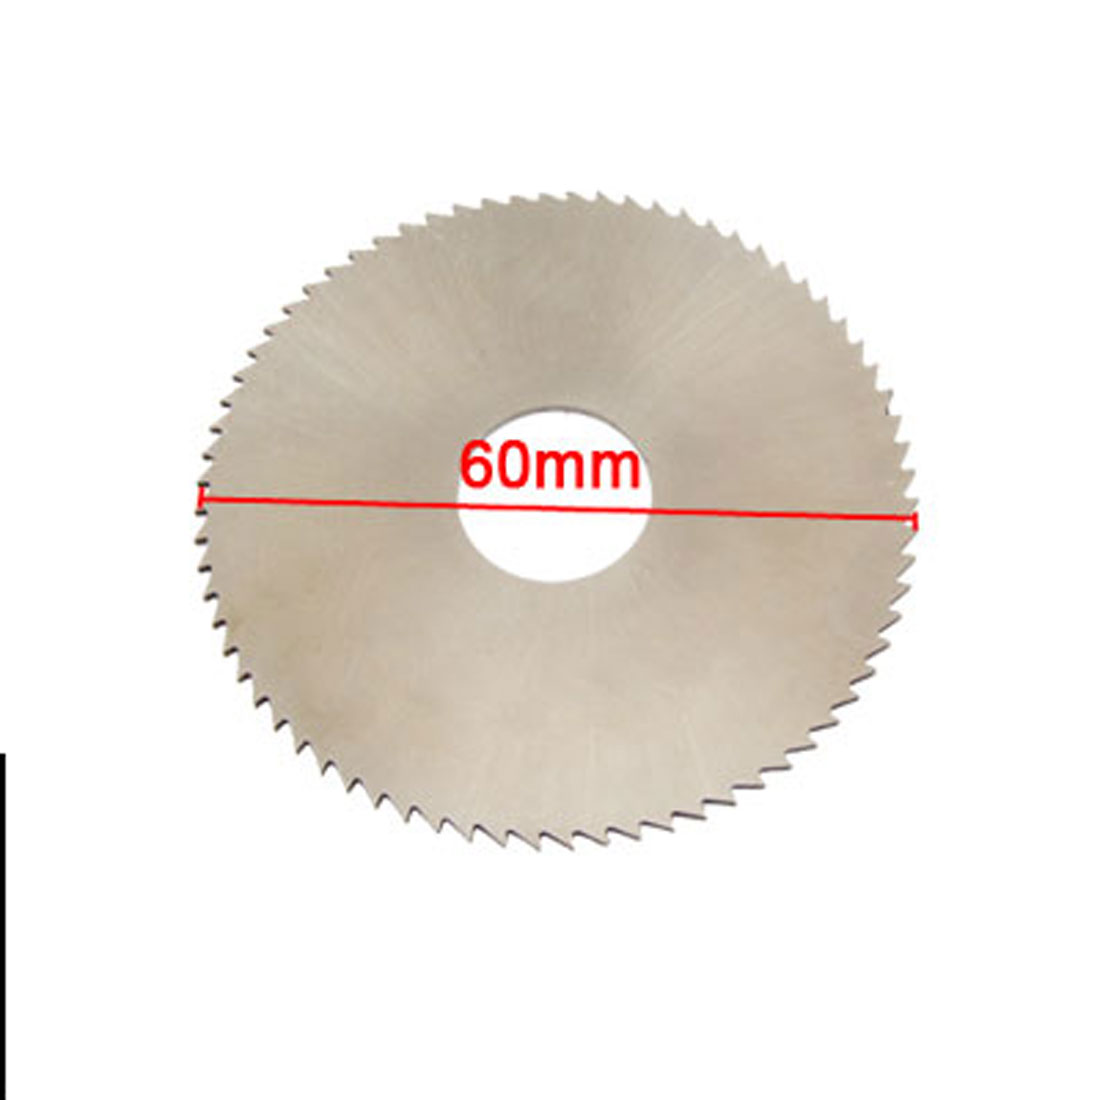 Unique Bargains 72T 60mm OD 1mm Thick HSS Circular Slitting Saw Gray - image 1 of 1